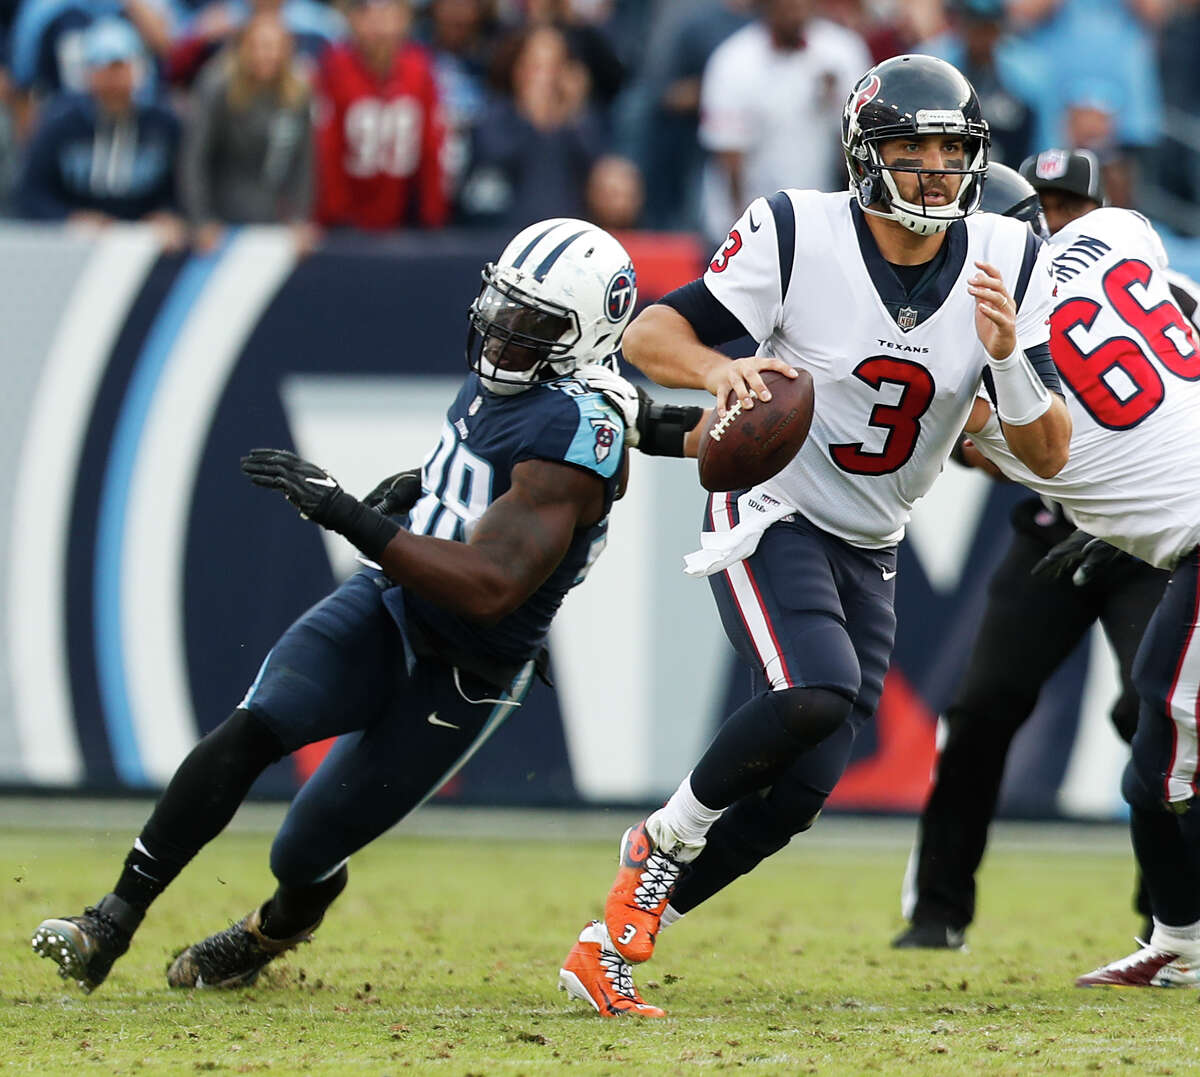 Houston Texans quarterback Tom Savage (3) is forced out of the pocket by Tennessee Titans outside linebacker Brian Orakpo (98) during the fourth quarter of an NFL football game at Nissan Stadium on Sunday, Dec. 3, 2017, in Nashville.